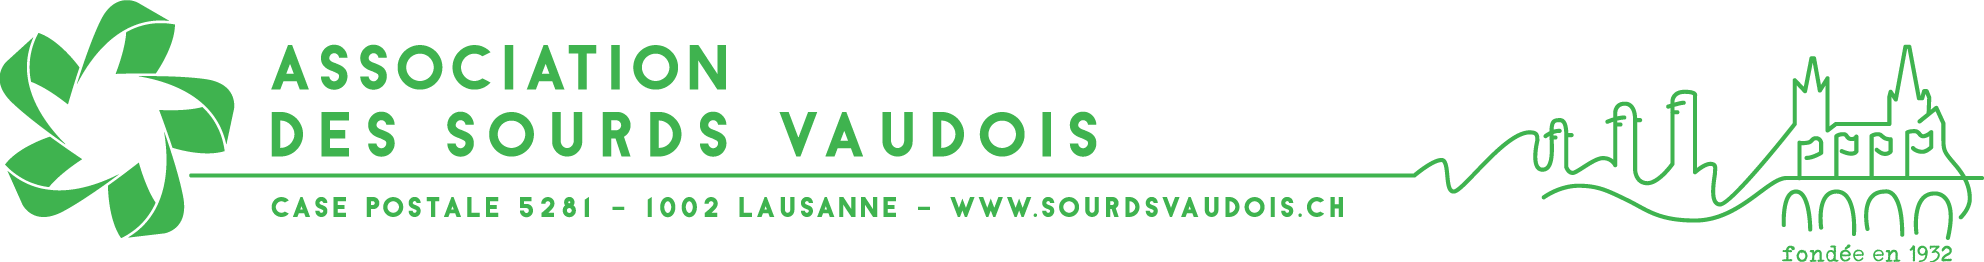 Association des sourds vaudois